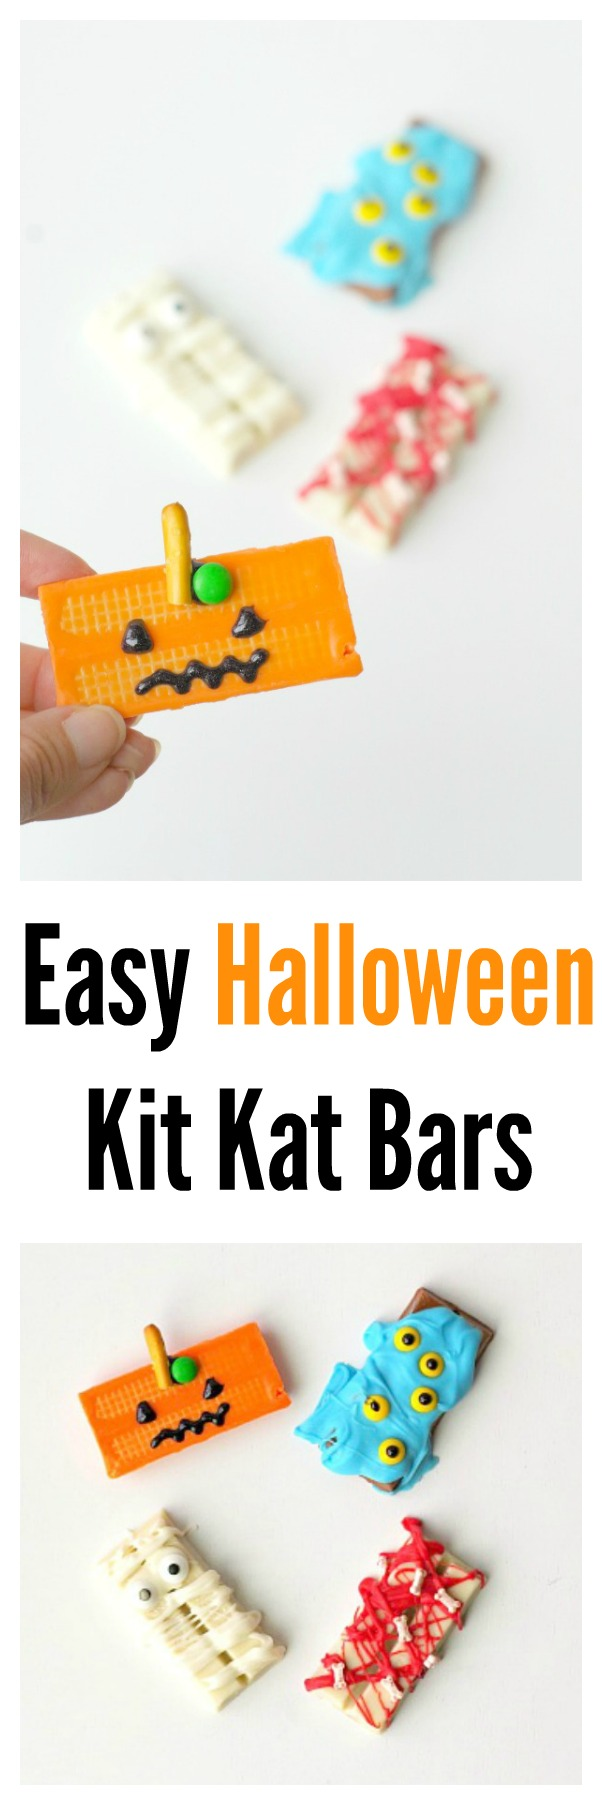 easy-halloween-kit-kat-bars-pumpkins-mummies-monsters-and-bloody-kit-kat-bars